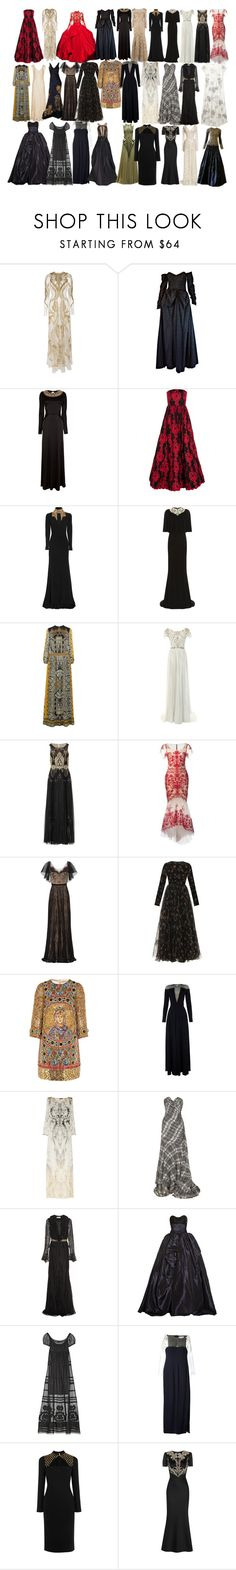 """""""Mary Stuart Dress"""" by taught-to-fly19 ❤ liked on Polyvore featuring Temperley London, Marchesa, Ceil Chapman, Georges Mak, Alice + Olivia, Alexander McQueen, Etro, Notte by Marchesa, Dolce&Gabbana and Balmain"""